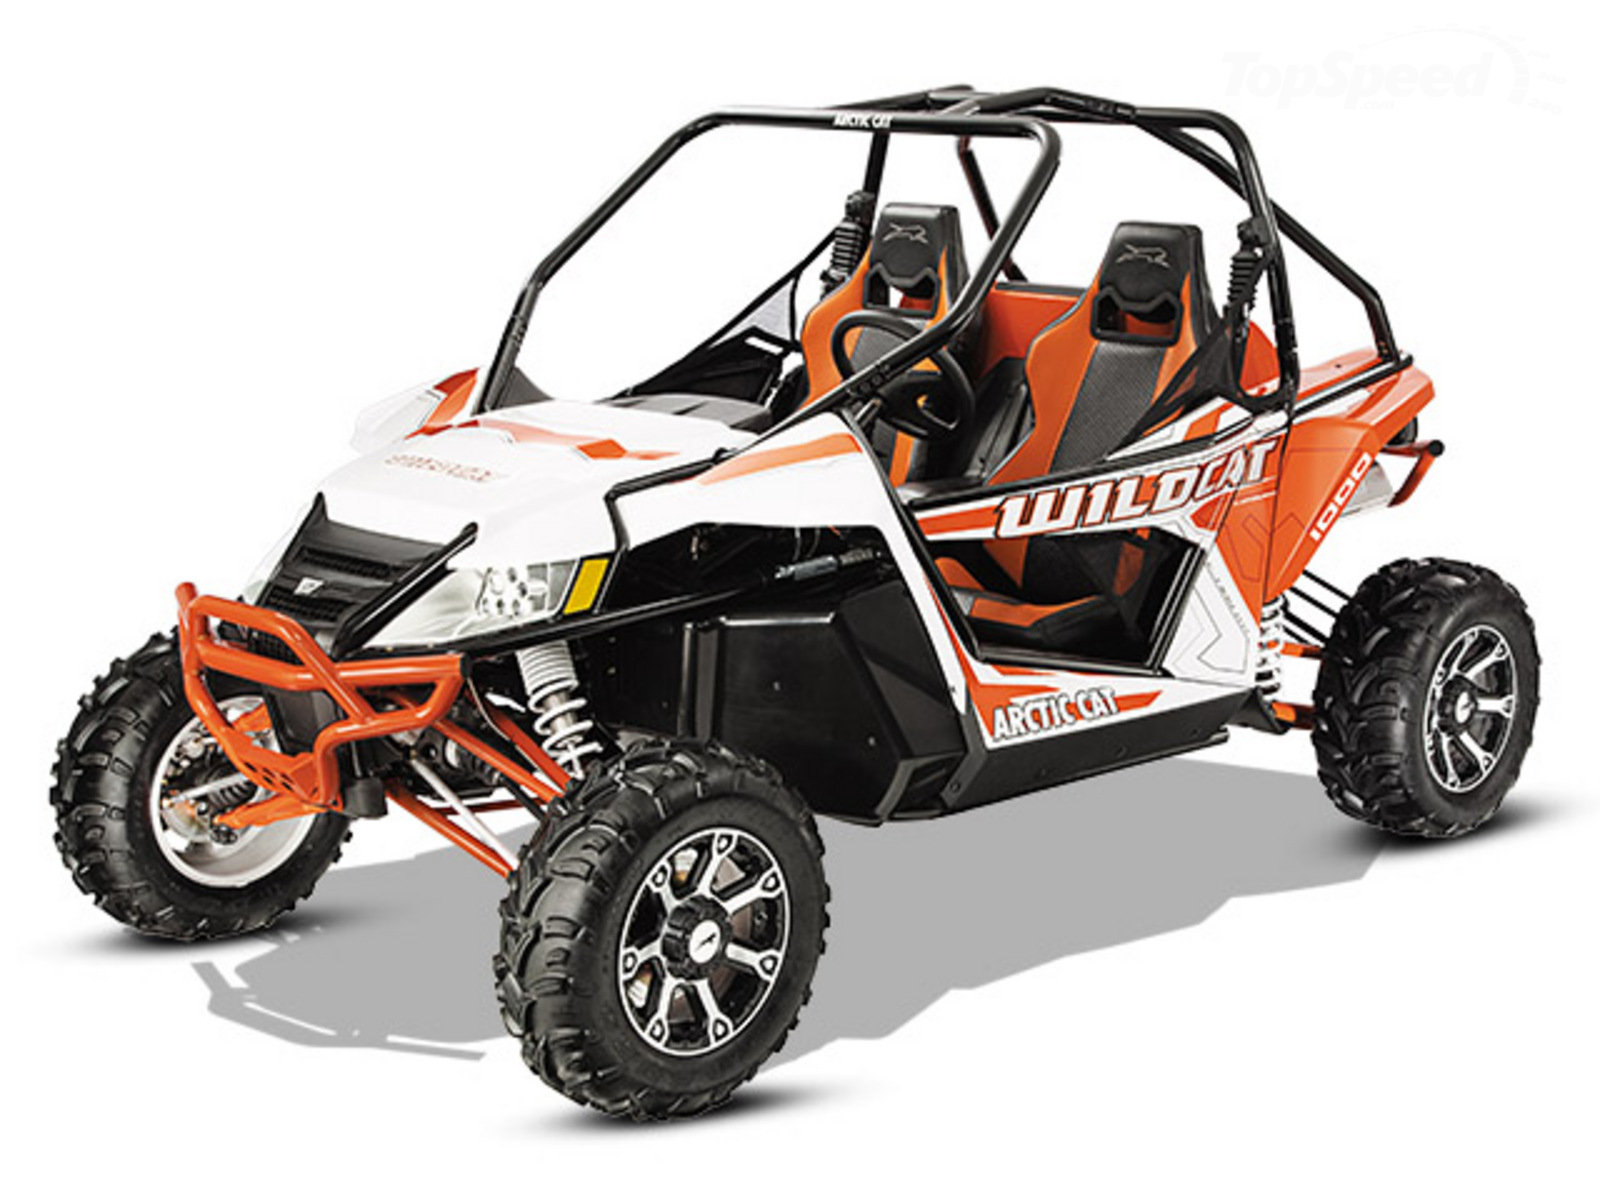 2014 Arctic Cat Wildcat 1000 Limited Review Top Speed